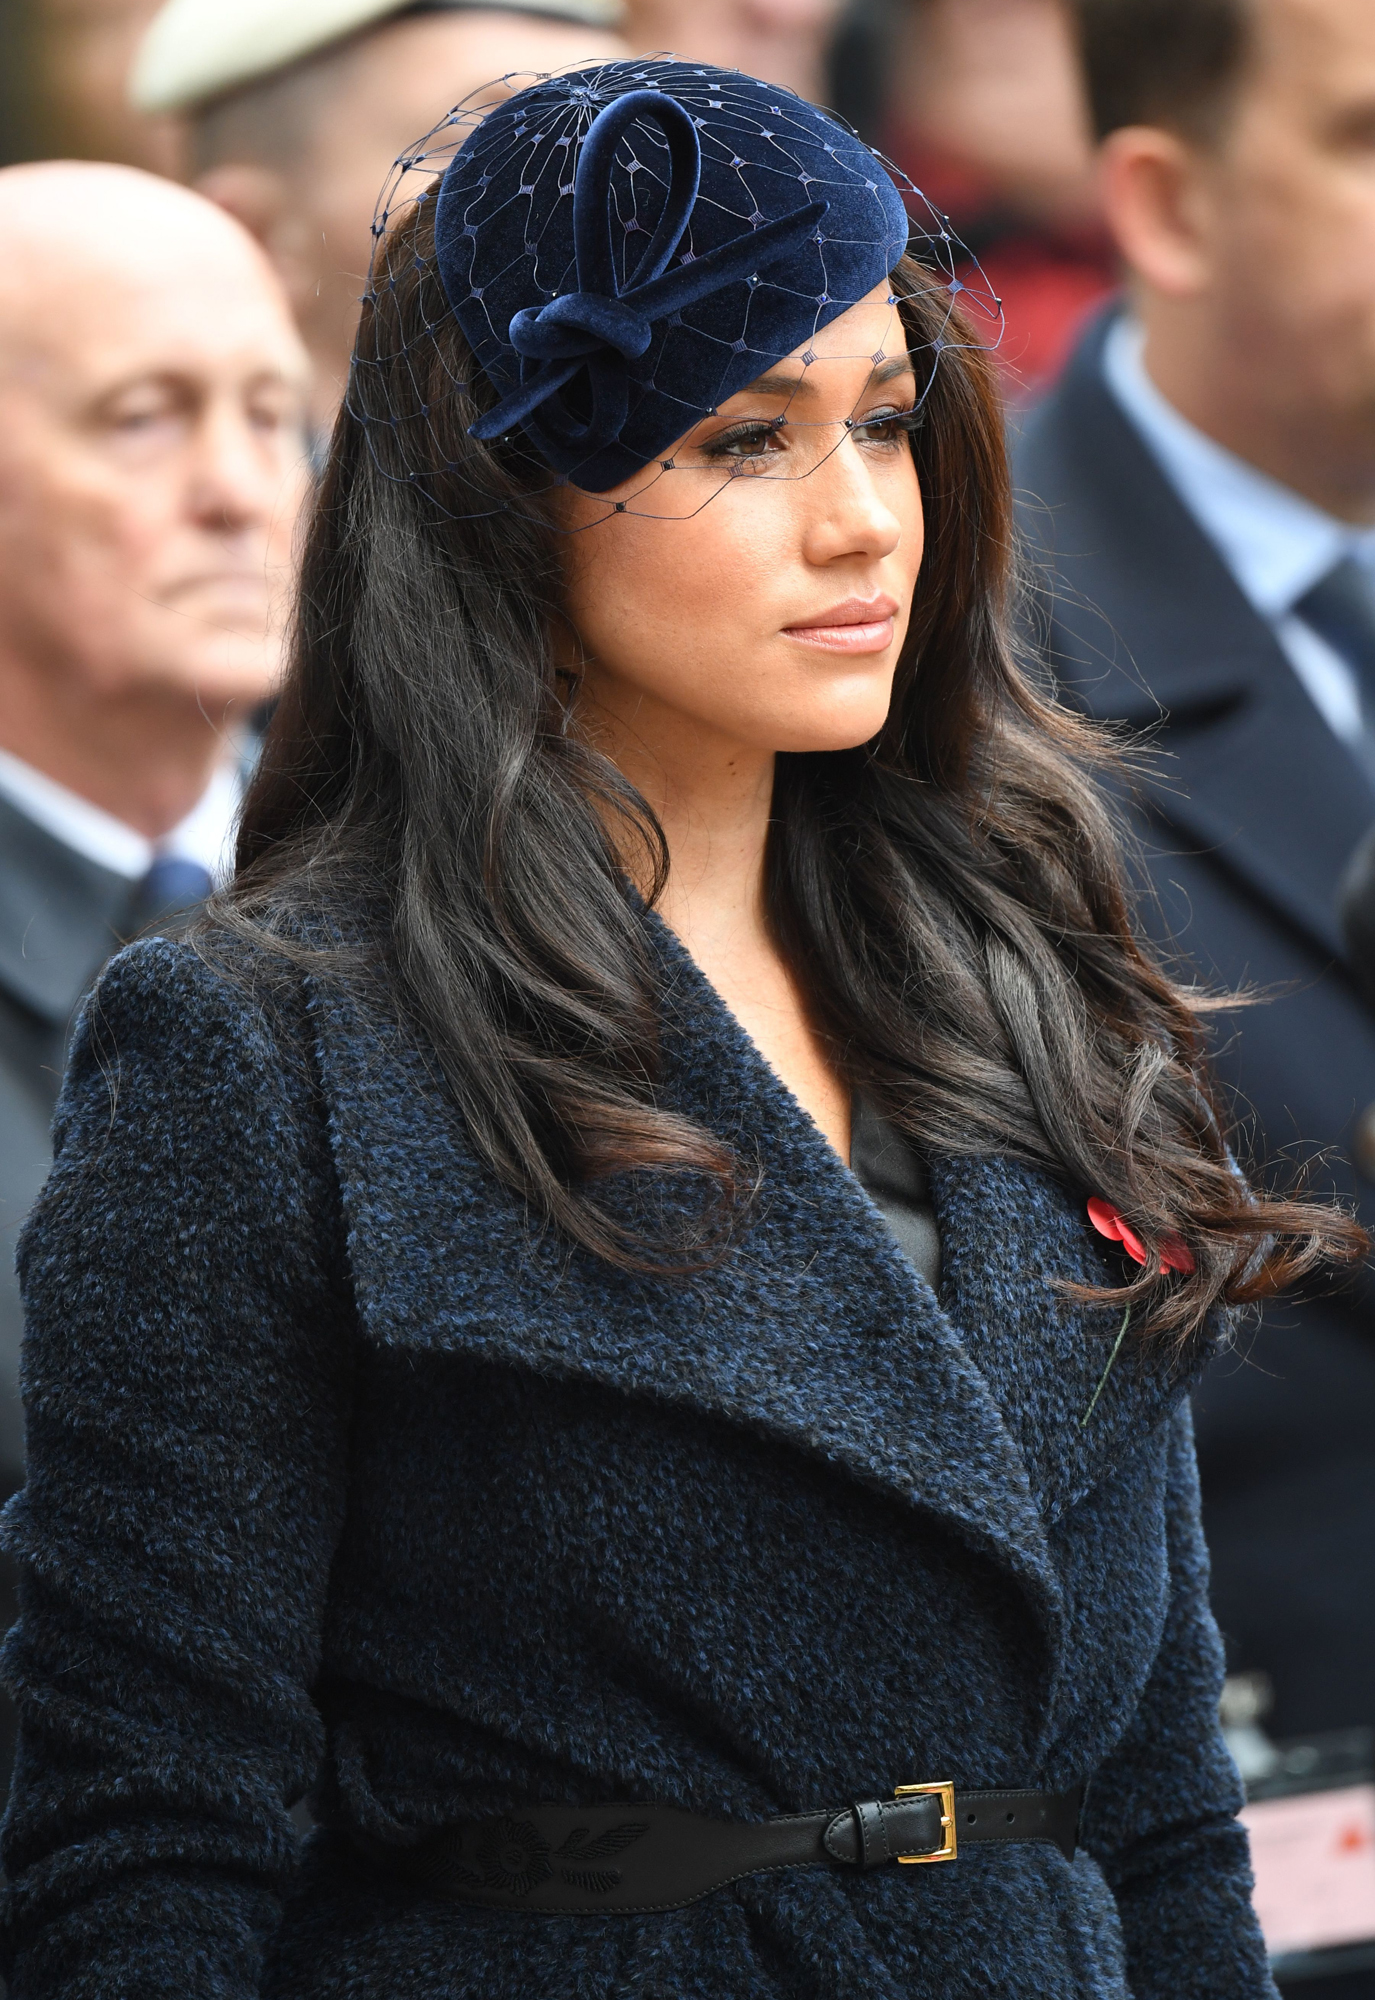 meghan markle and prince harry at field of remembrance people com https people com royals meghan markle makes her debut visit to the field of remembrance alongside prince harry